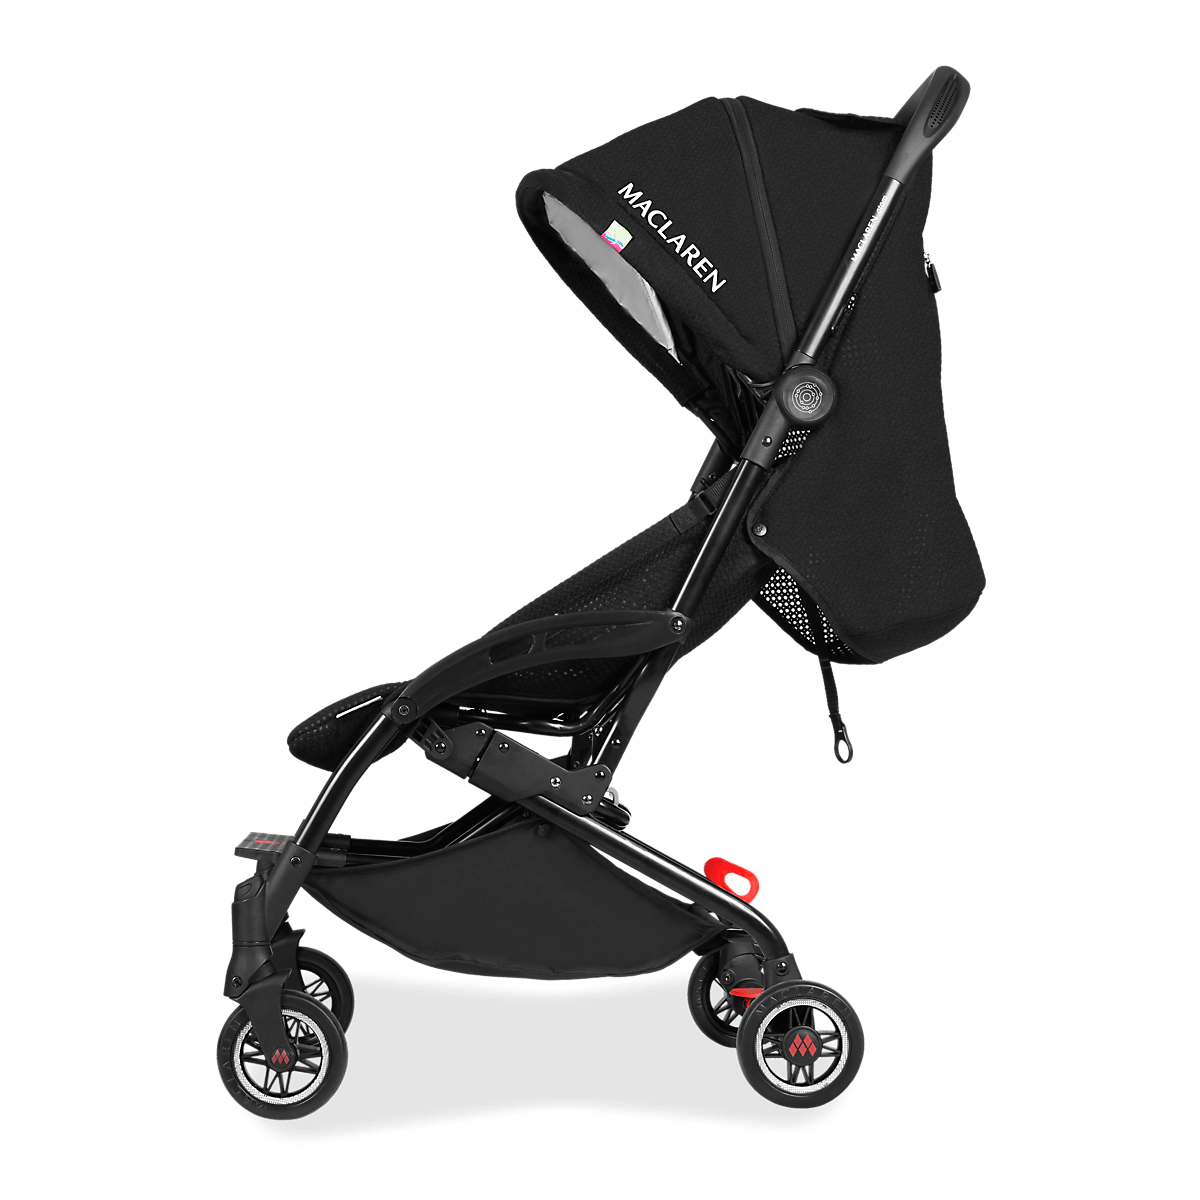 Maclaren Stroller Uk Reviews New Launch Maclaren Uk Atom Stroller With Lifetime Warranty